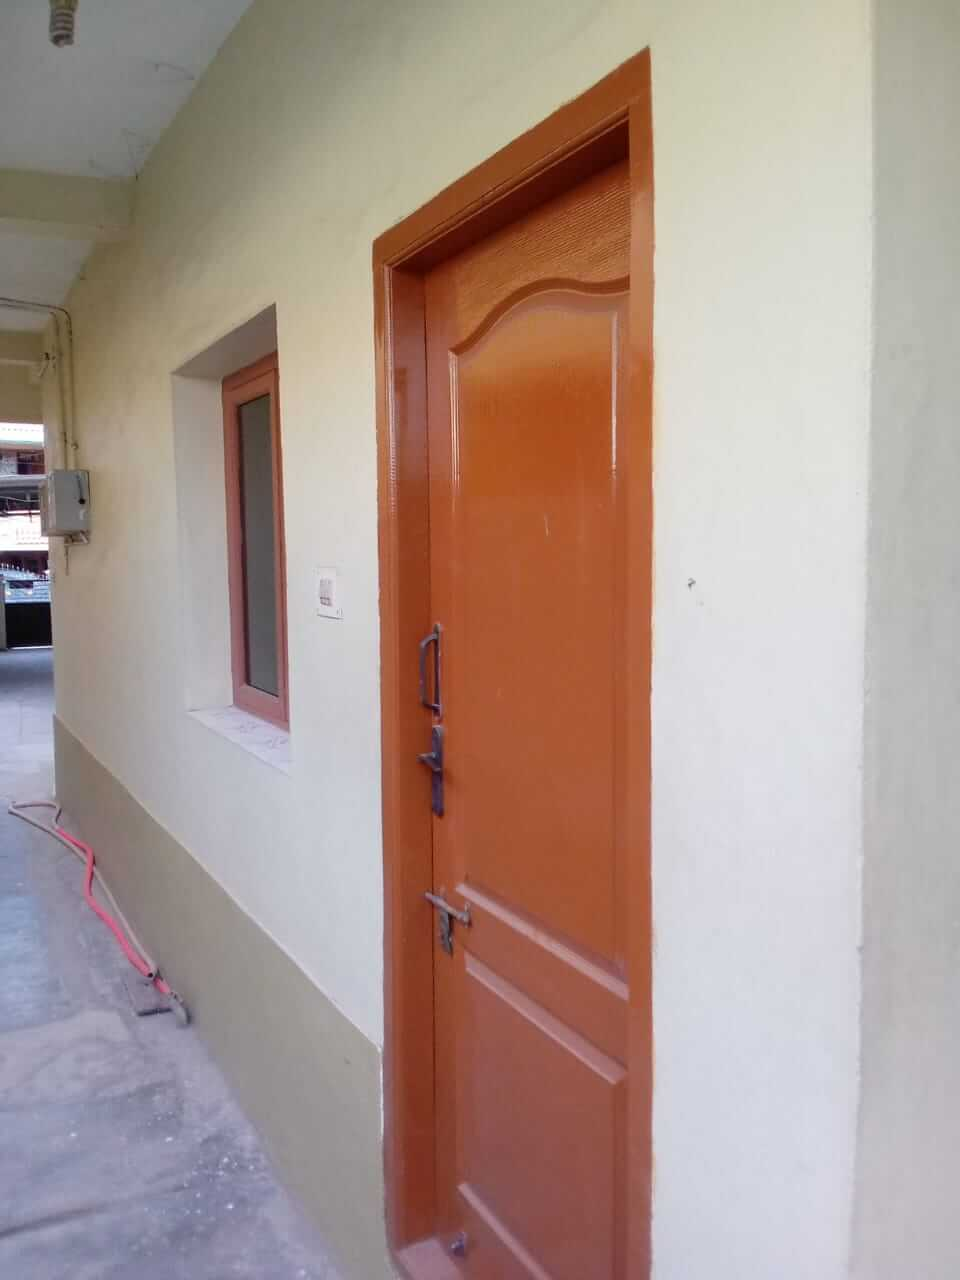 Warehouse / Godown for Rent 1100 Sq. Feet at Coimbatore